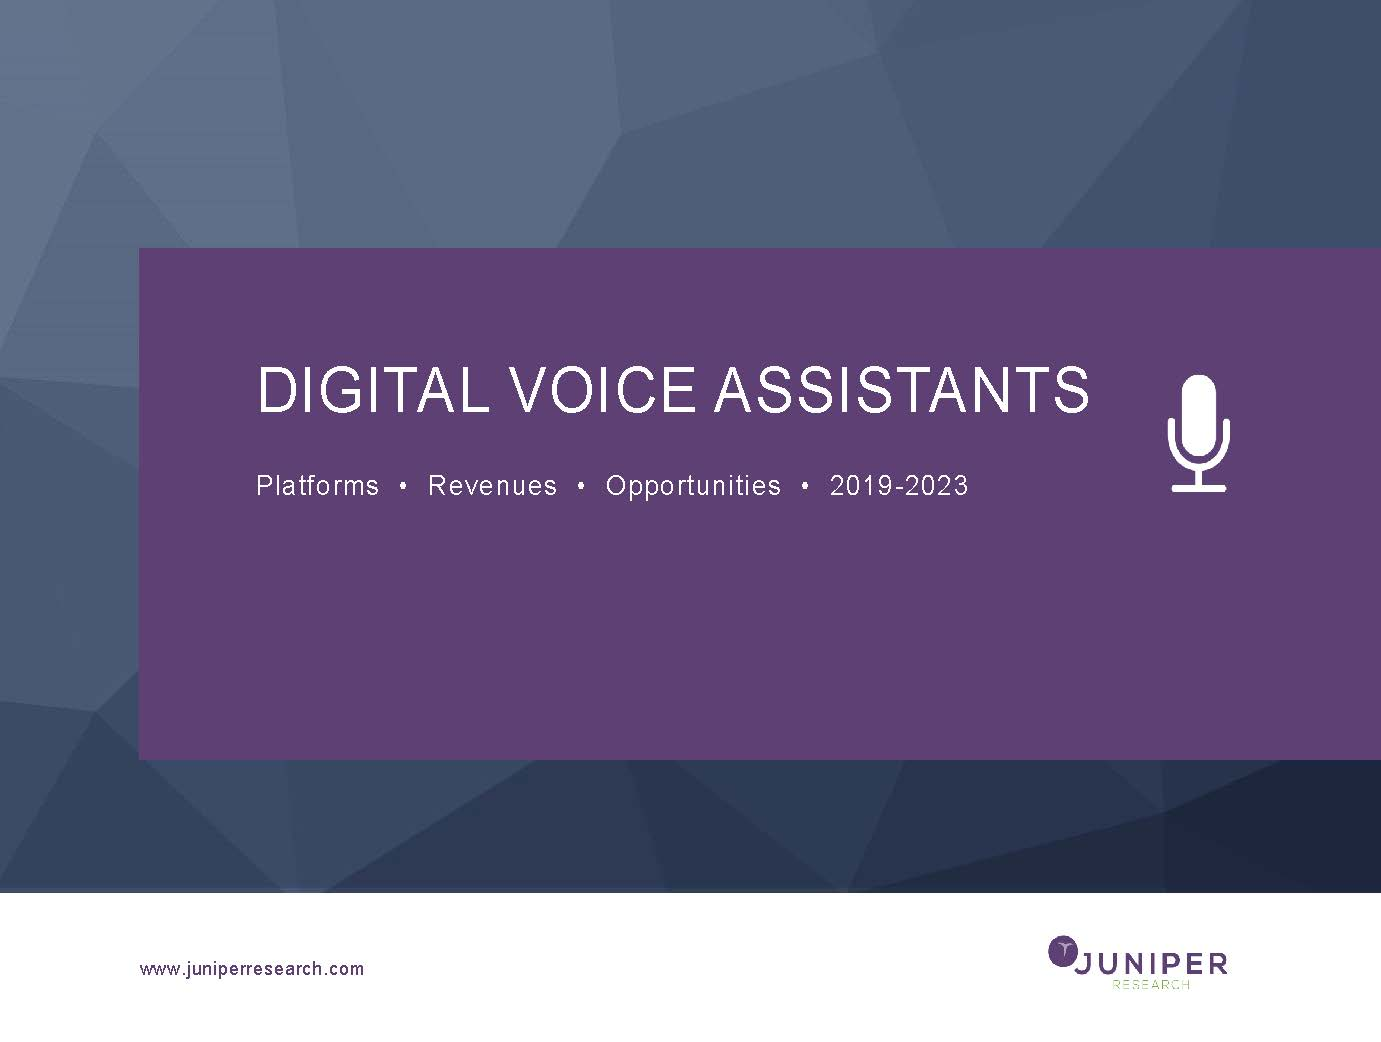 Digital Voice Assistants: Platforms, Revenues & Opportunities 2019-2023